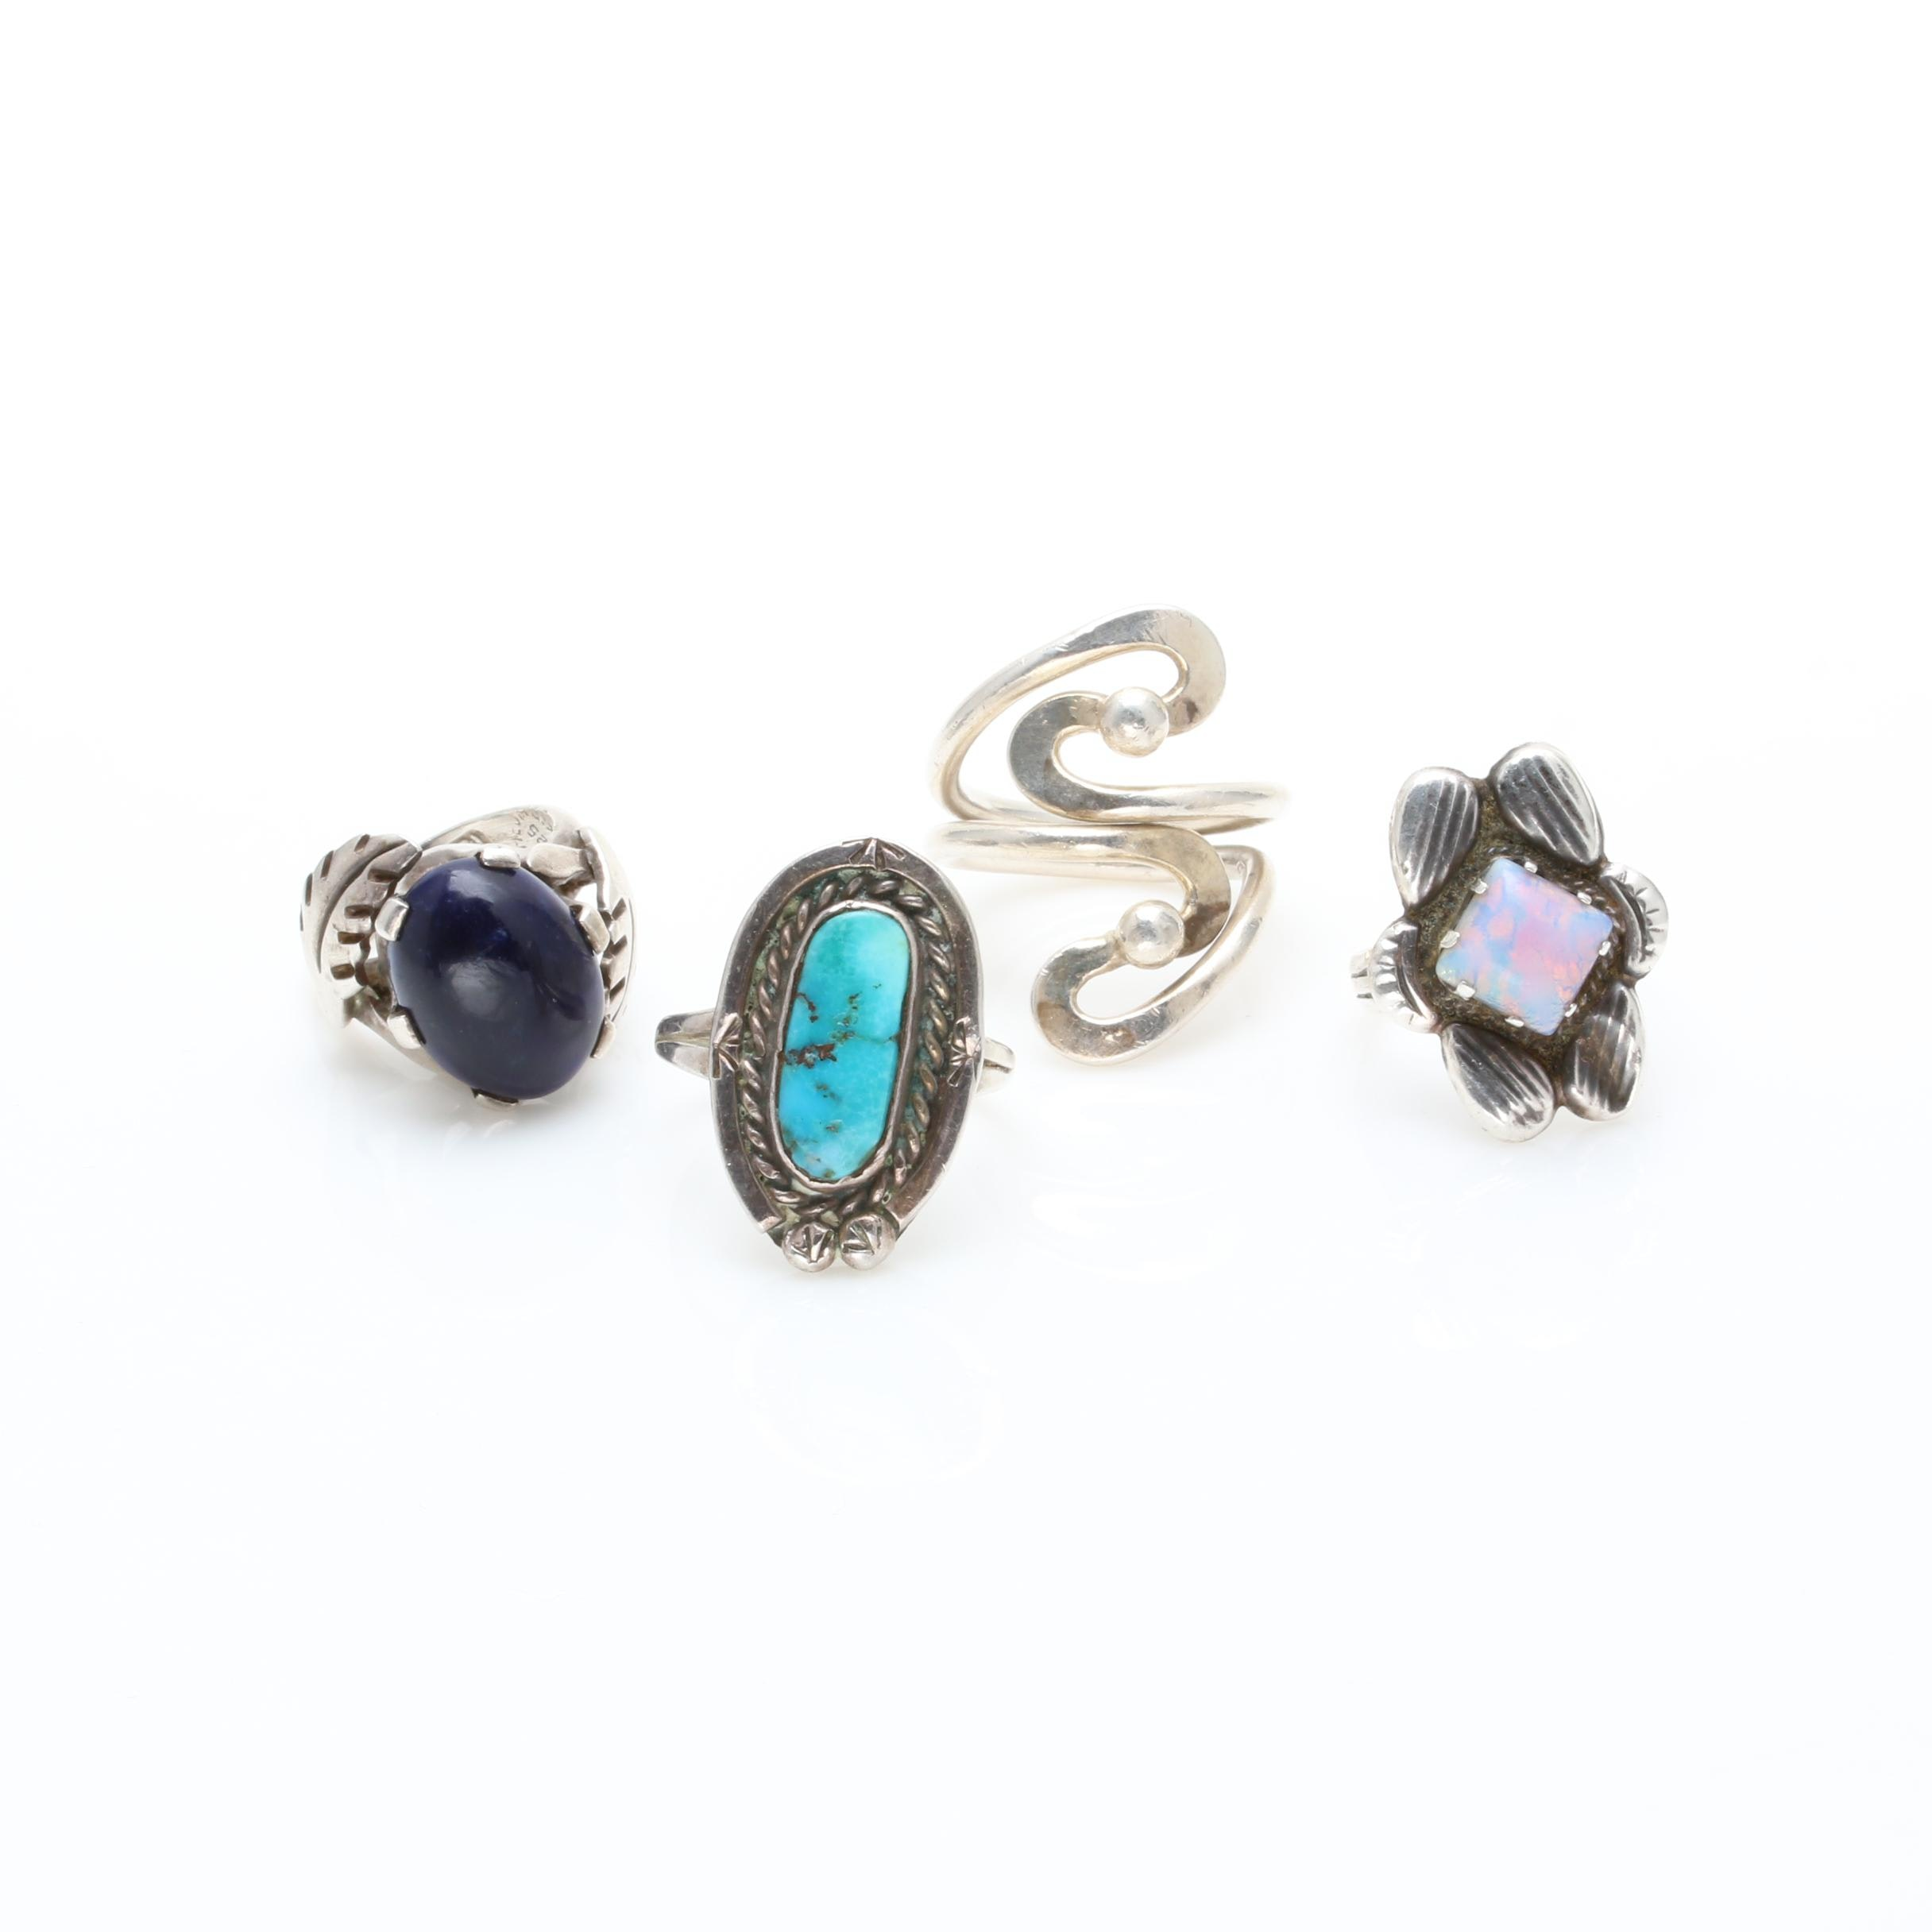 Southwestern Style Sterling Silver Ring Selection Including Imitation Opal